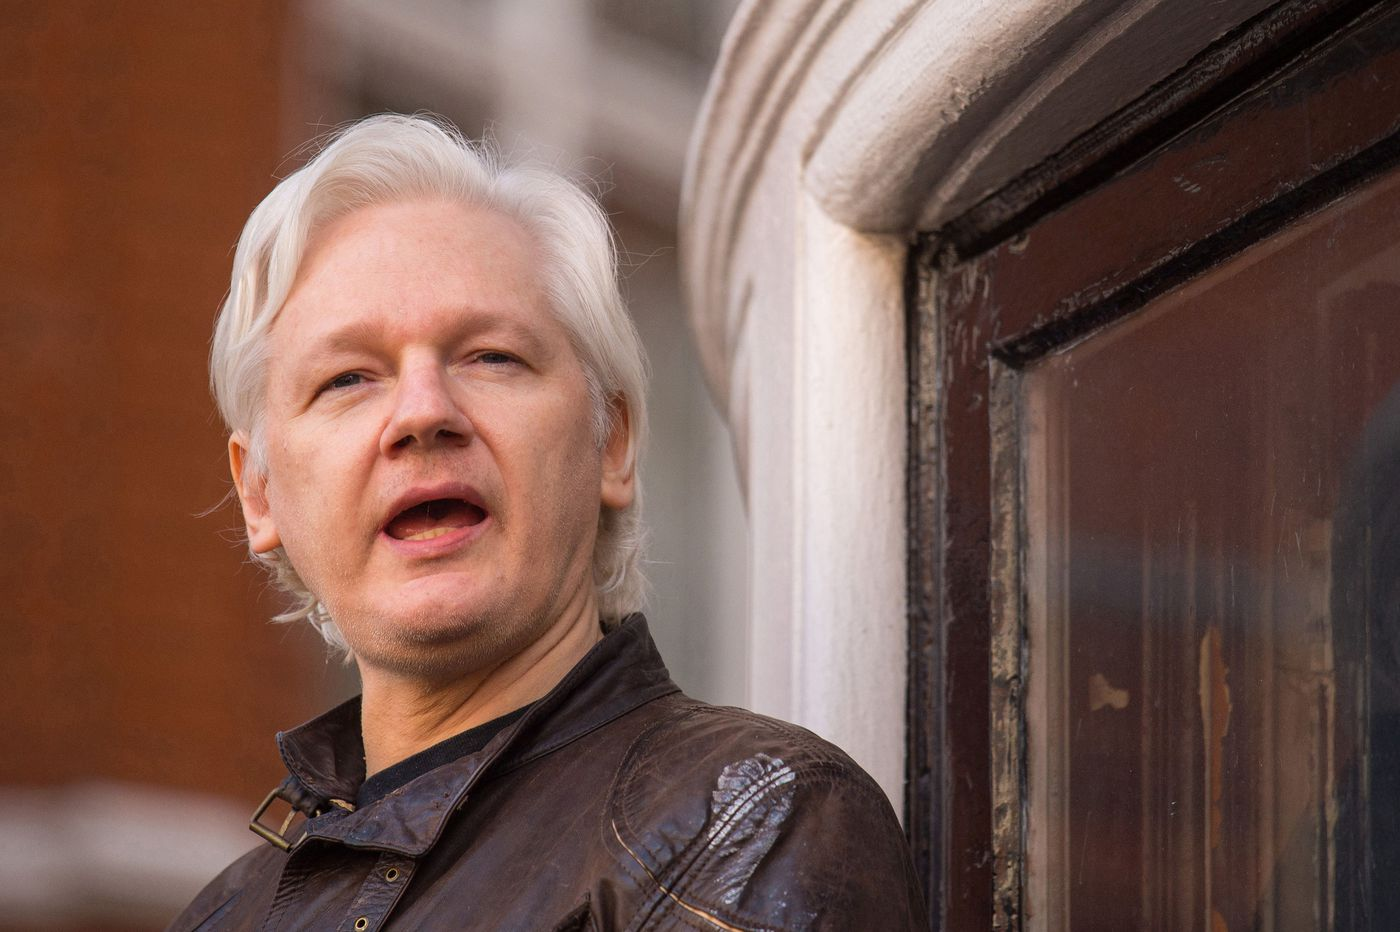 Wikileaks founder Julian Assange has been charged, prosecutors reveal inadvertently in court filing